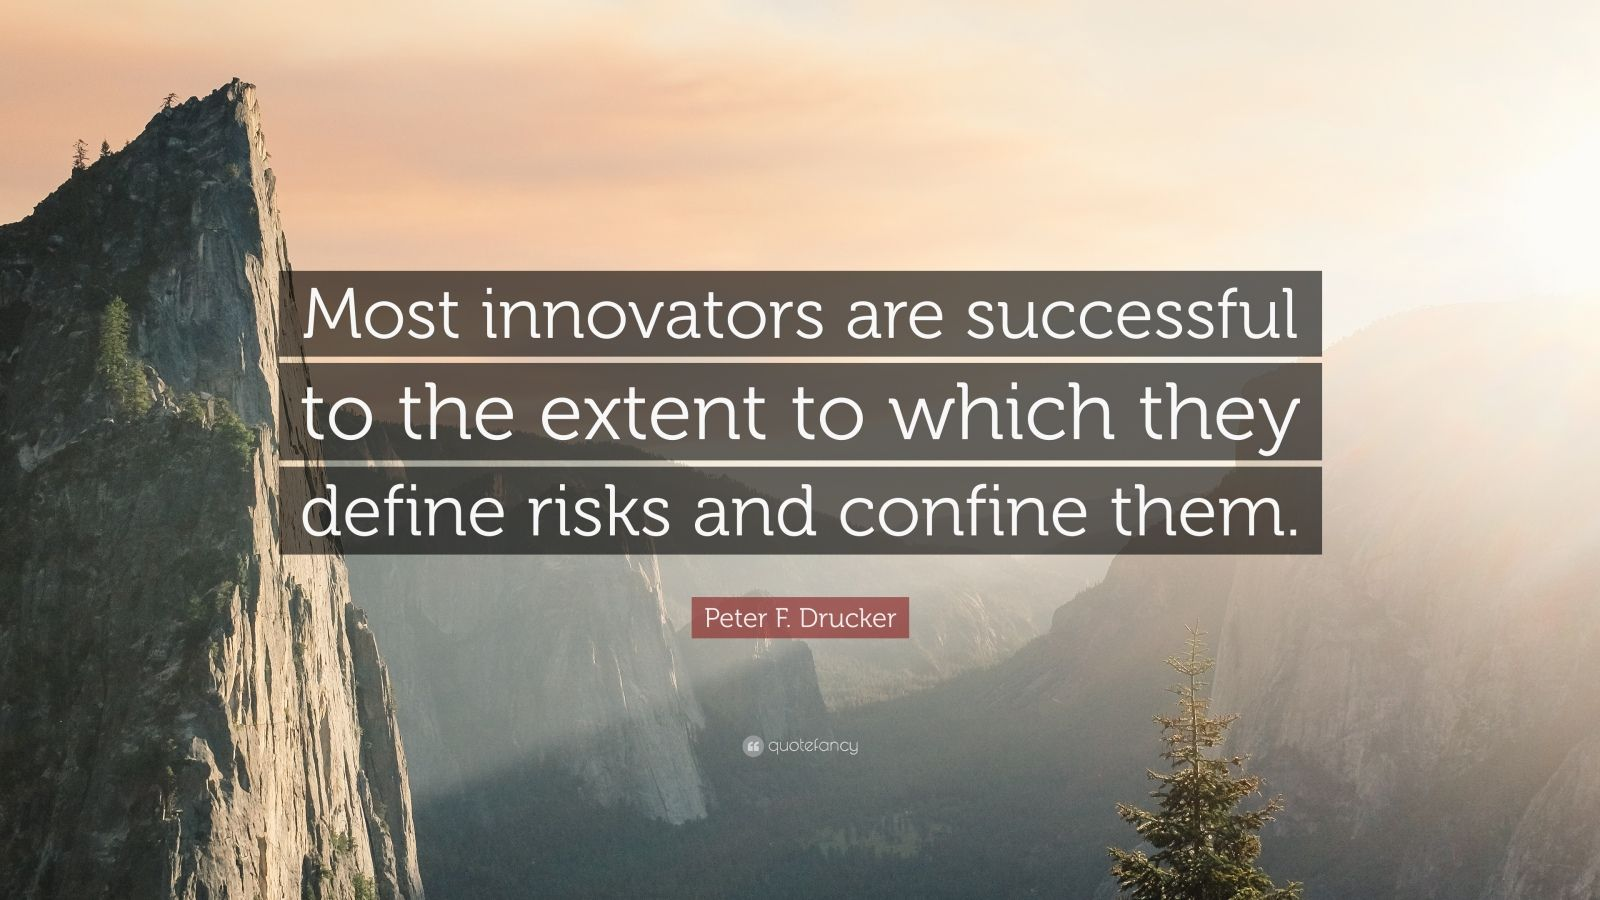 """Peter F. Drucker Quote: """"Most innovators are successful to the extent to which they define risks and confine them."""""""